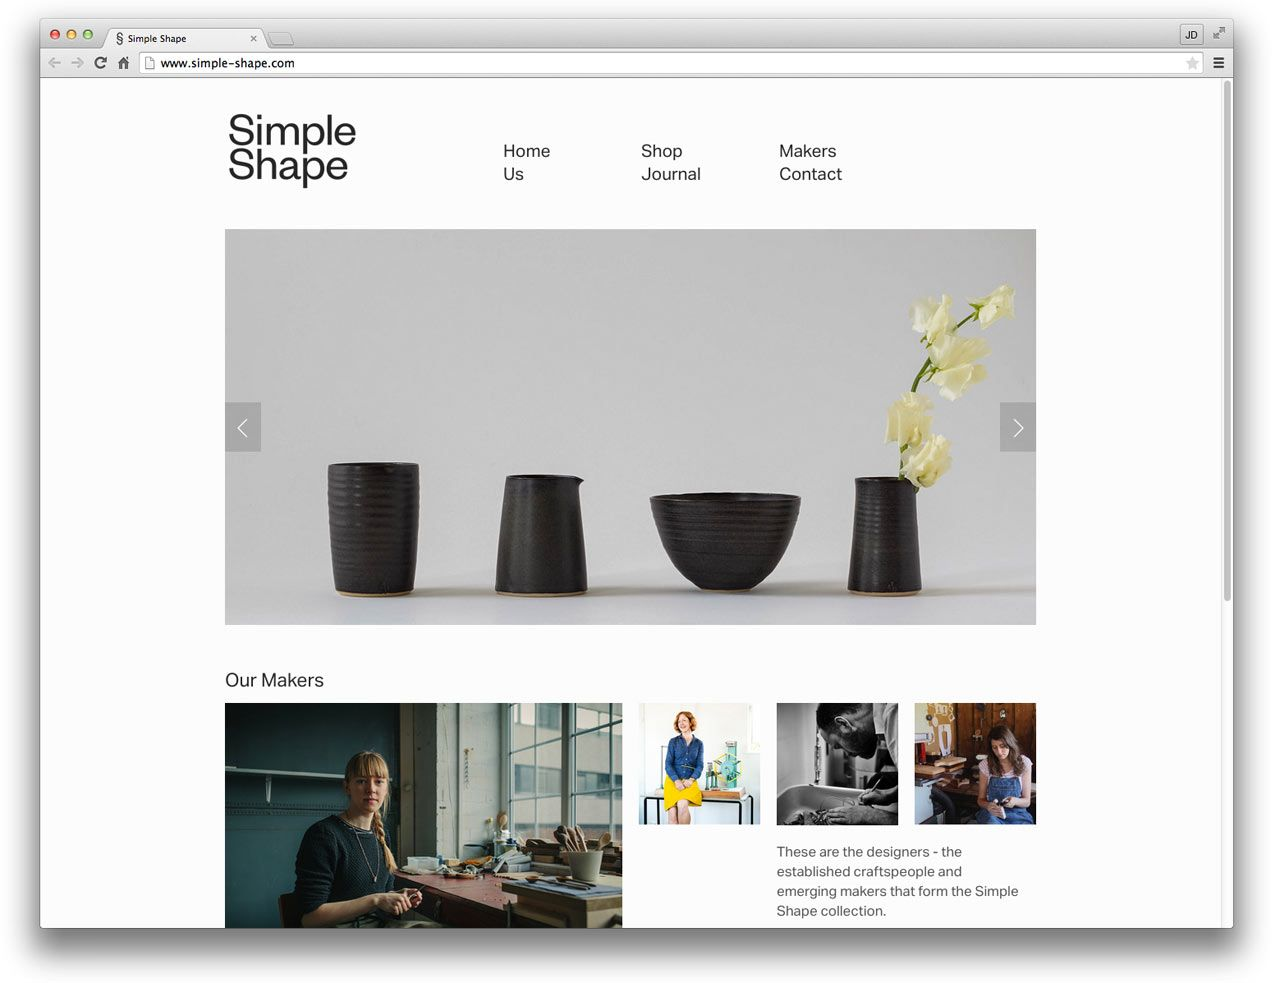 10 Well Designed Squarespace Commerce Sites Design Milk Wellness Design Site Design Design Milk